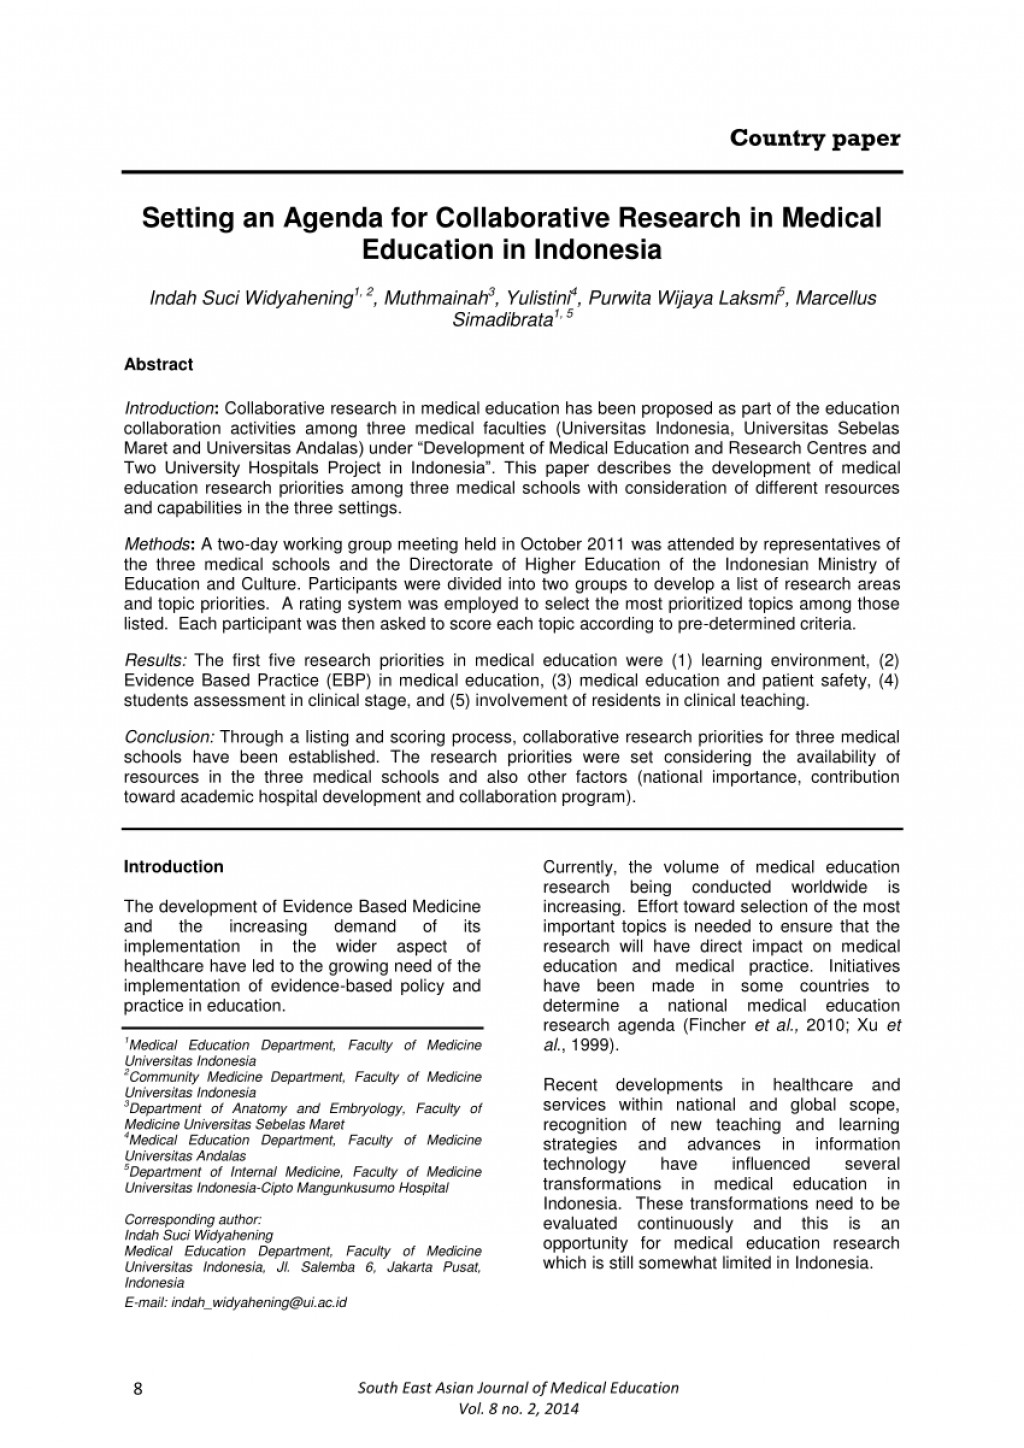 015 Largepreview Medical Topics For Research Imposing Paper Argumentative Interesting Large